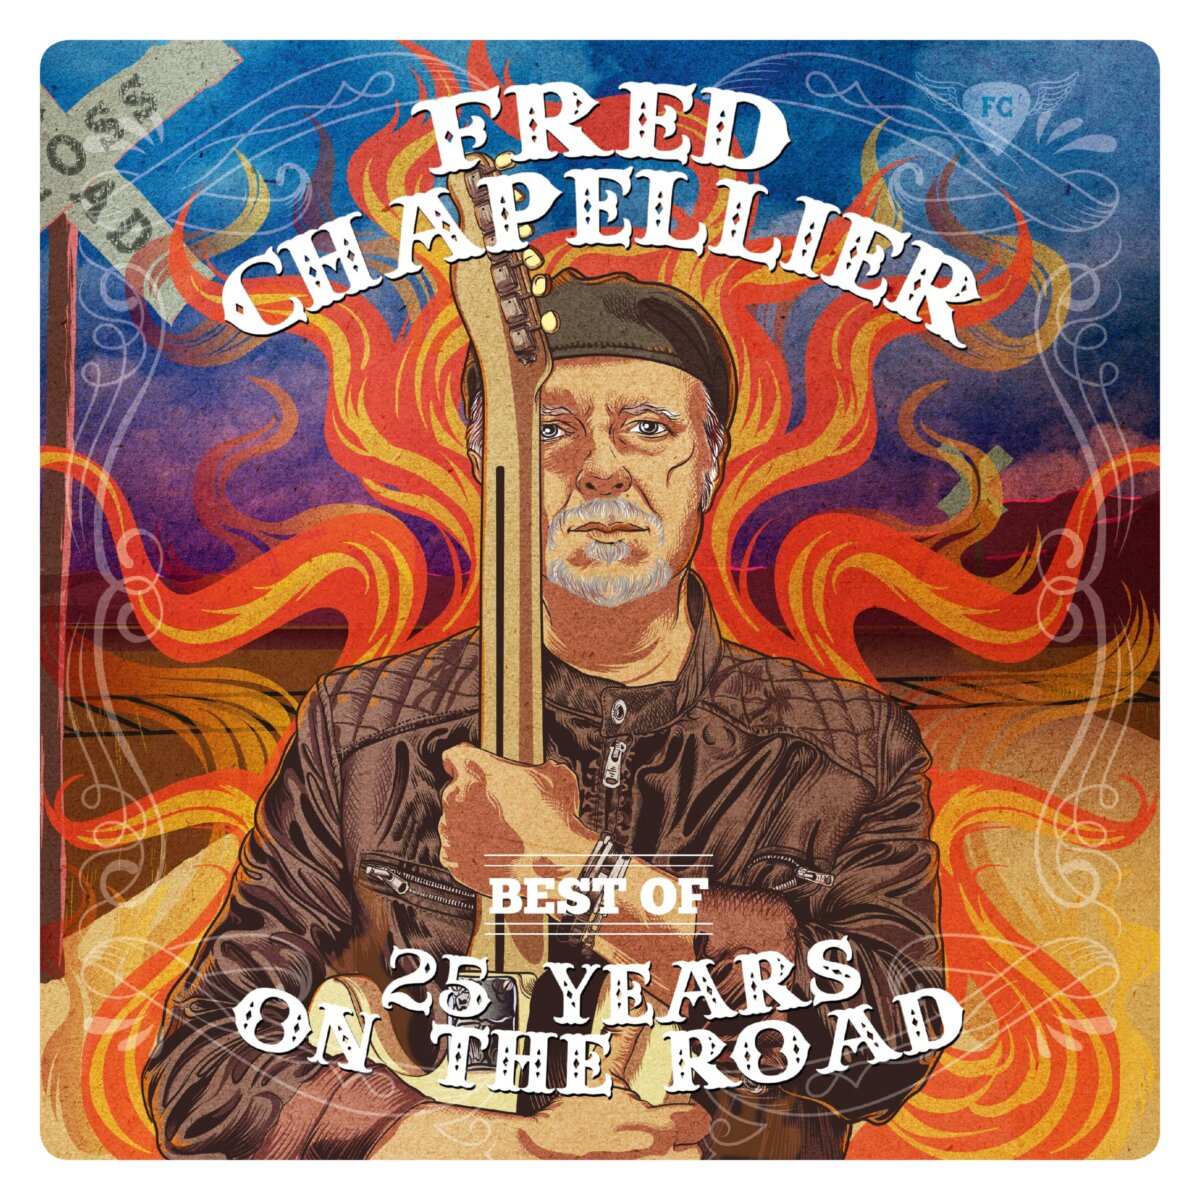 Fred Chappellier Best Of 25 Years On The Road